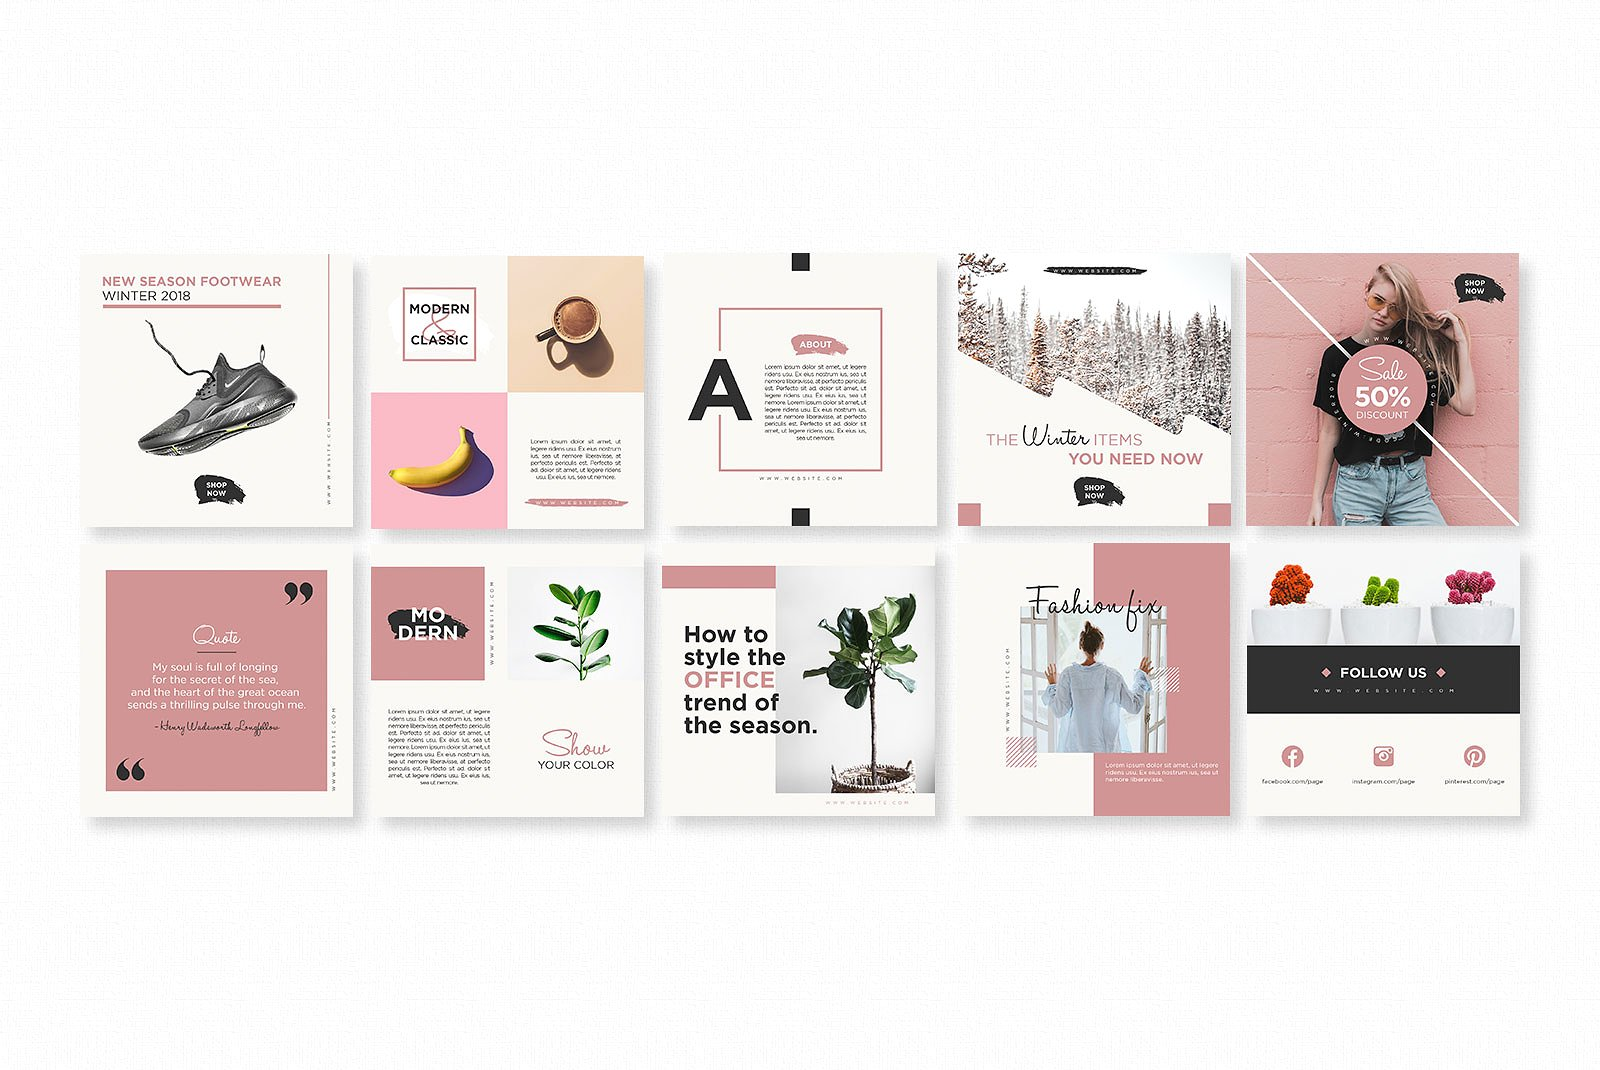 Gravity Instagram Pack Graphic Web Elements By wally6484 - Image 3